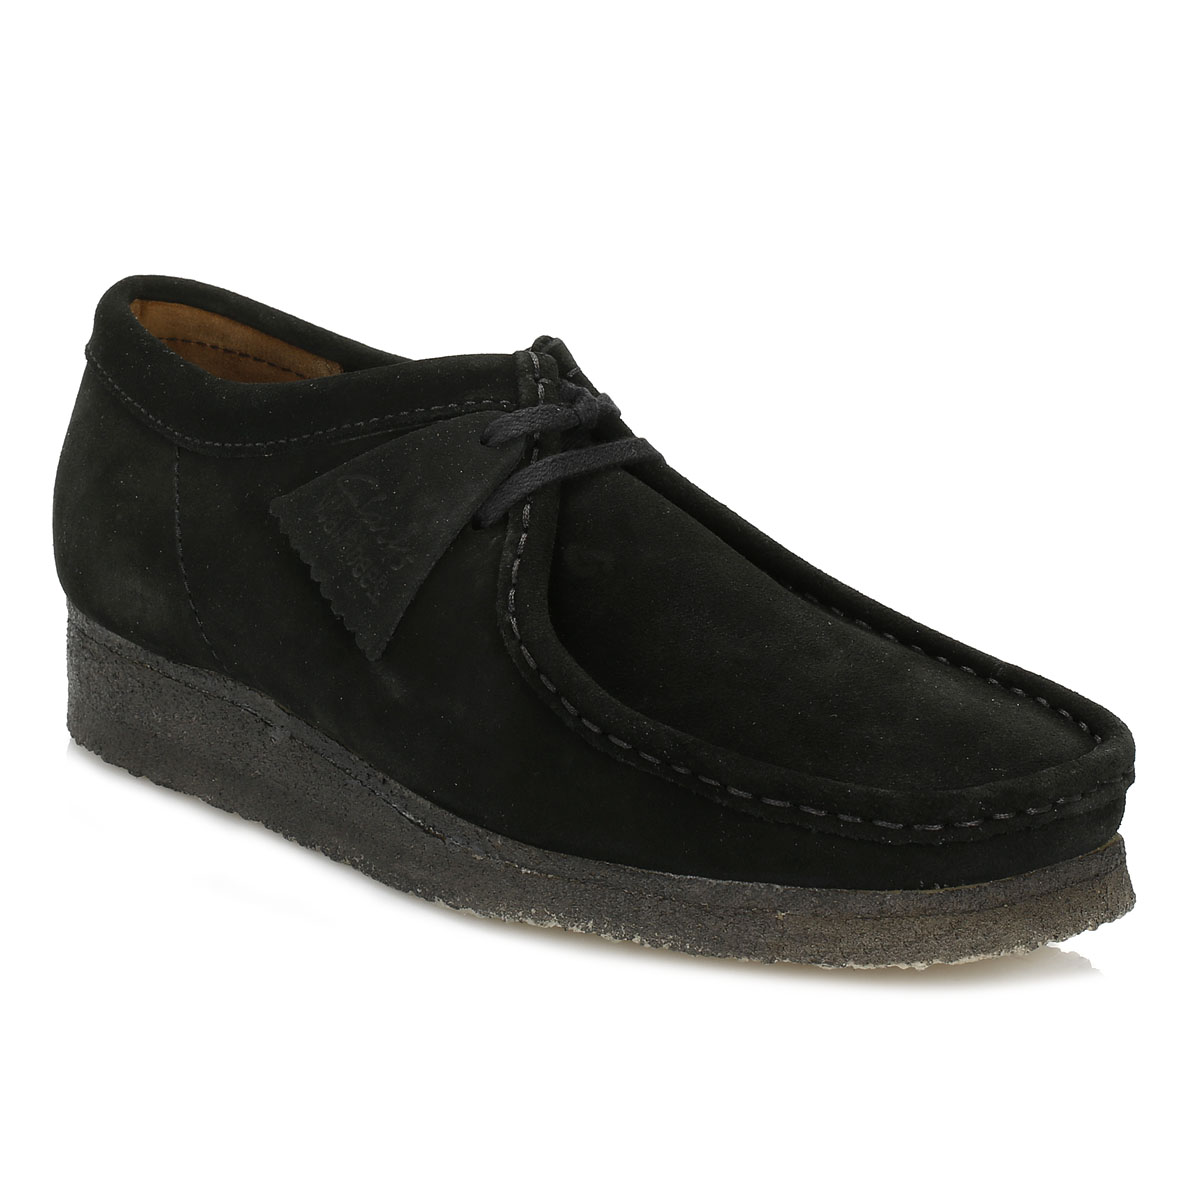 cheap sale sast Clarks Originals Wallabee Lace Up Shoes In Black Suede outlet limited edition free shipping ebay buy cheap under $60 RM7CuC9DUP